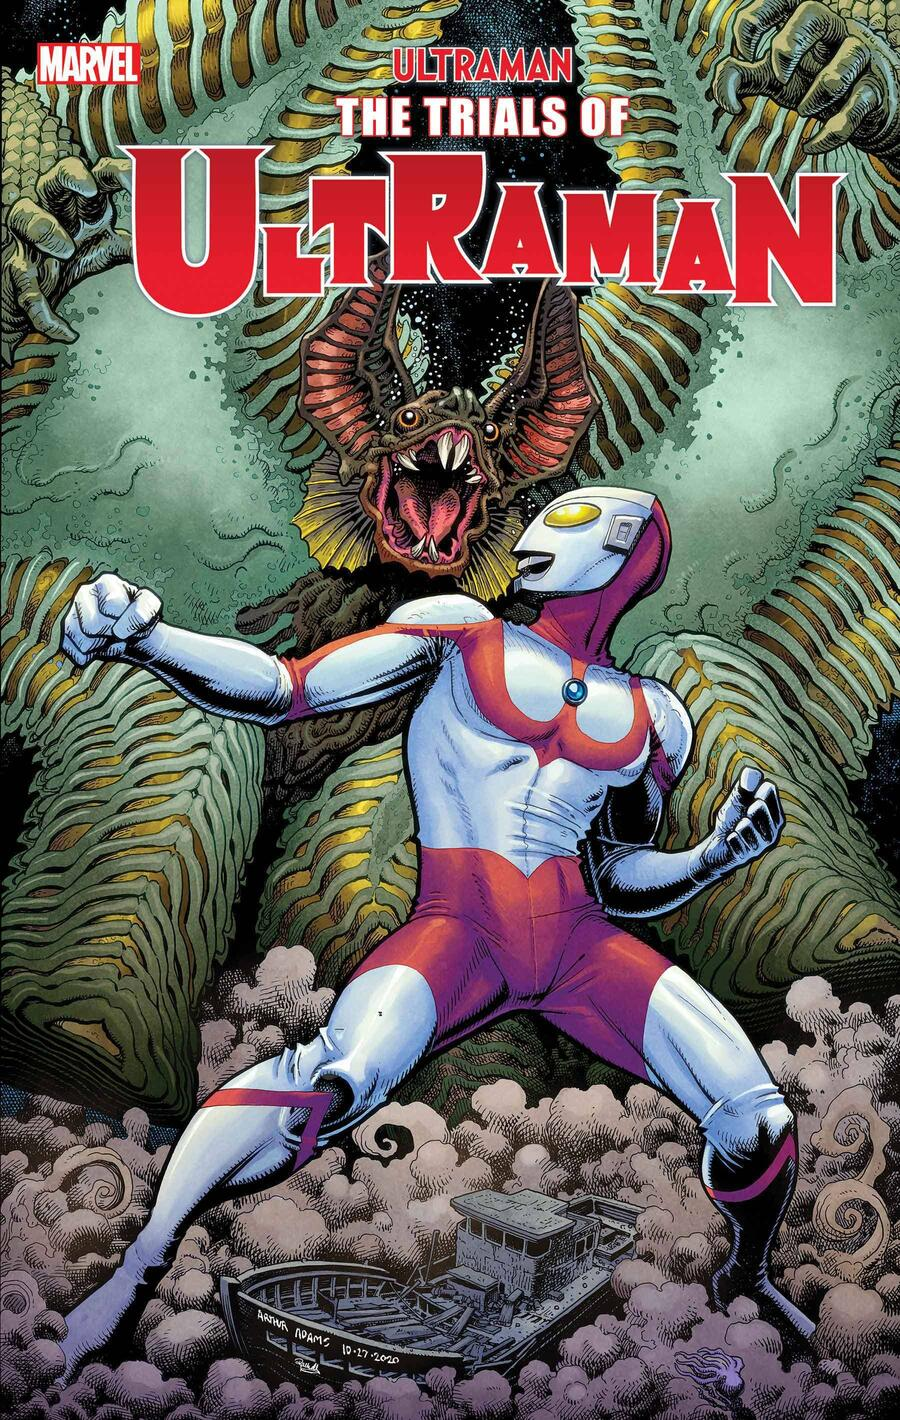 ultramantrials2021001_cov Ultraman faces his greatest ordeal in THE TRIALS OF ULTRAMAN trailer